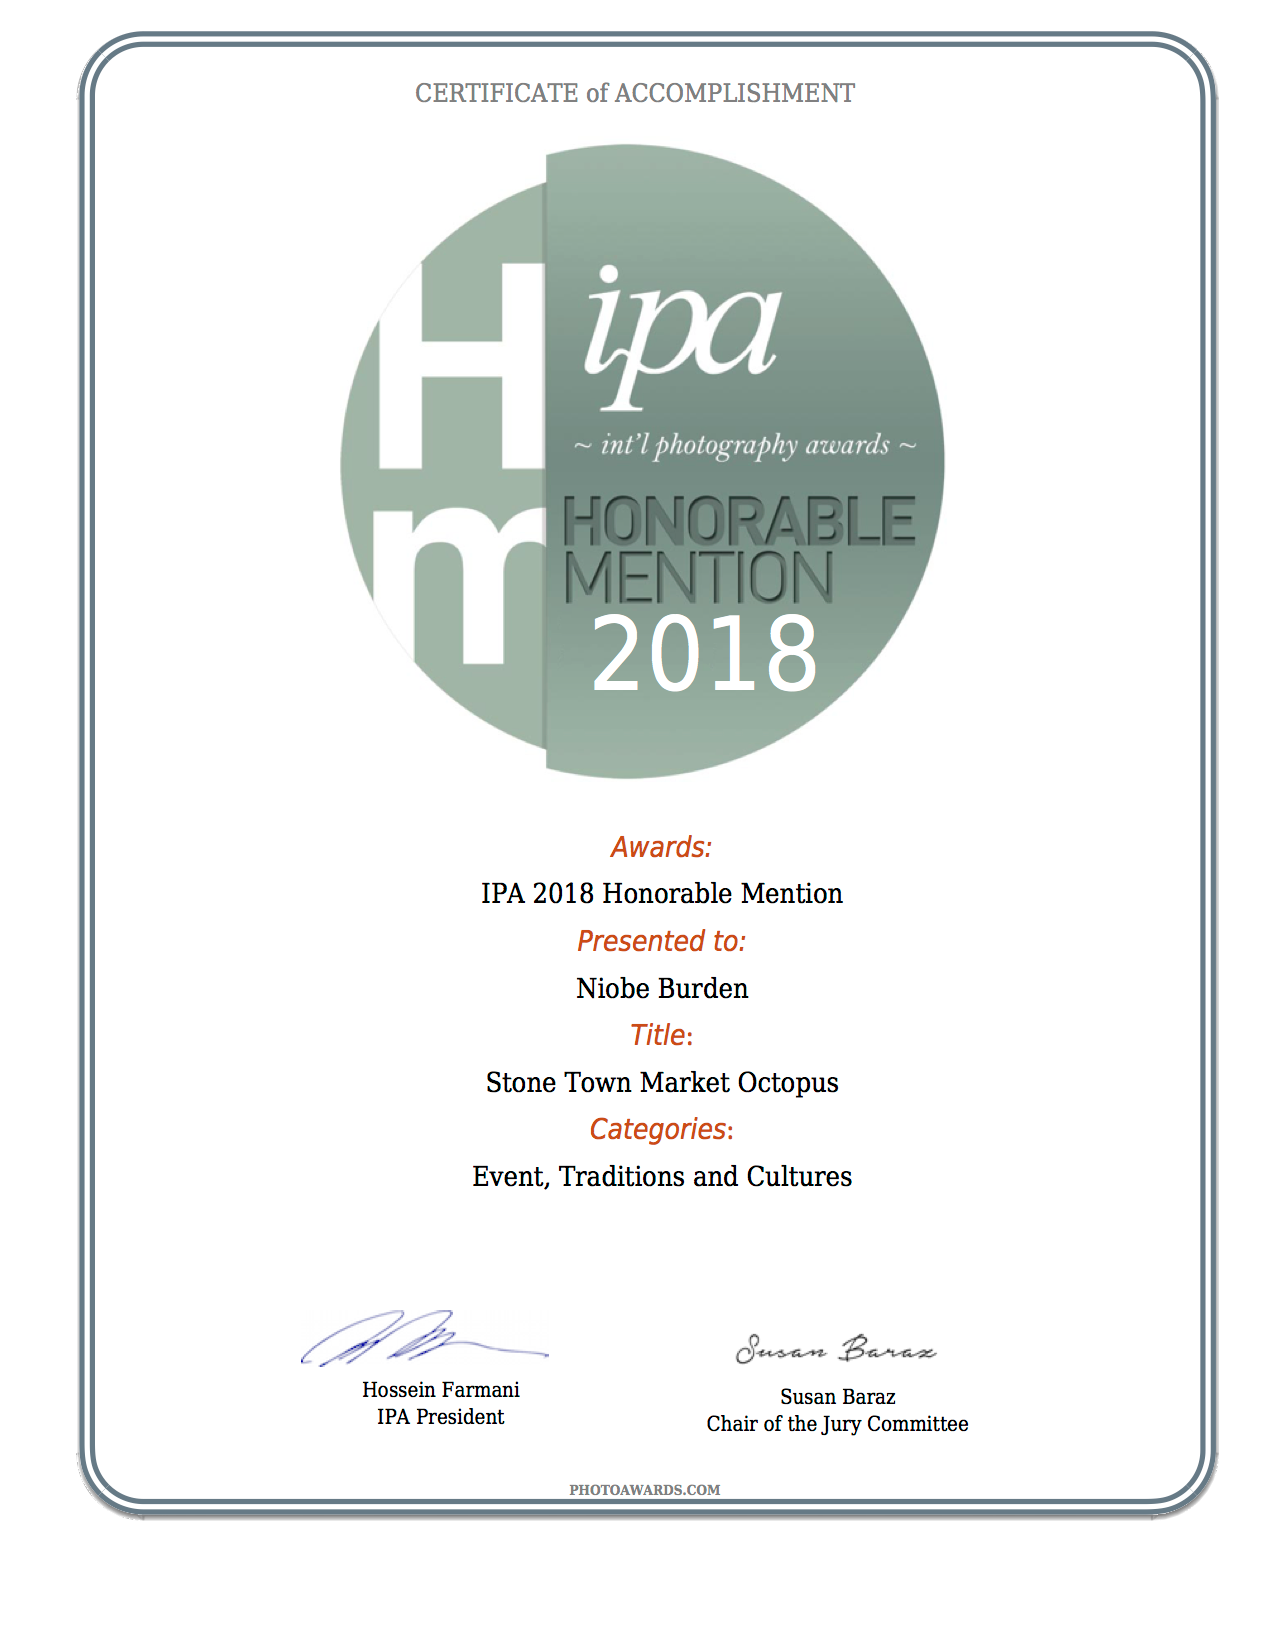 IPA HonorMention2018-Events,tradition,cultures.png